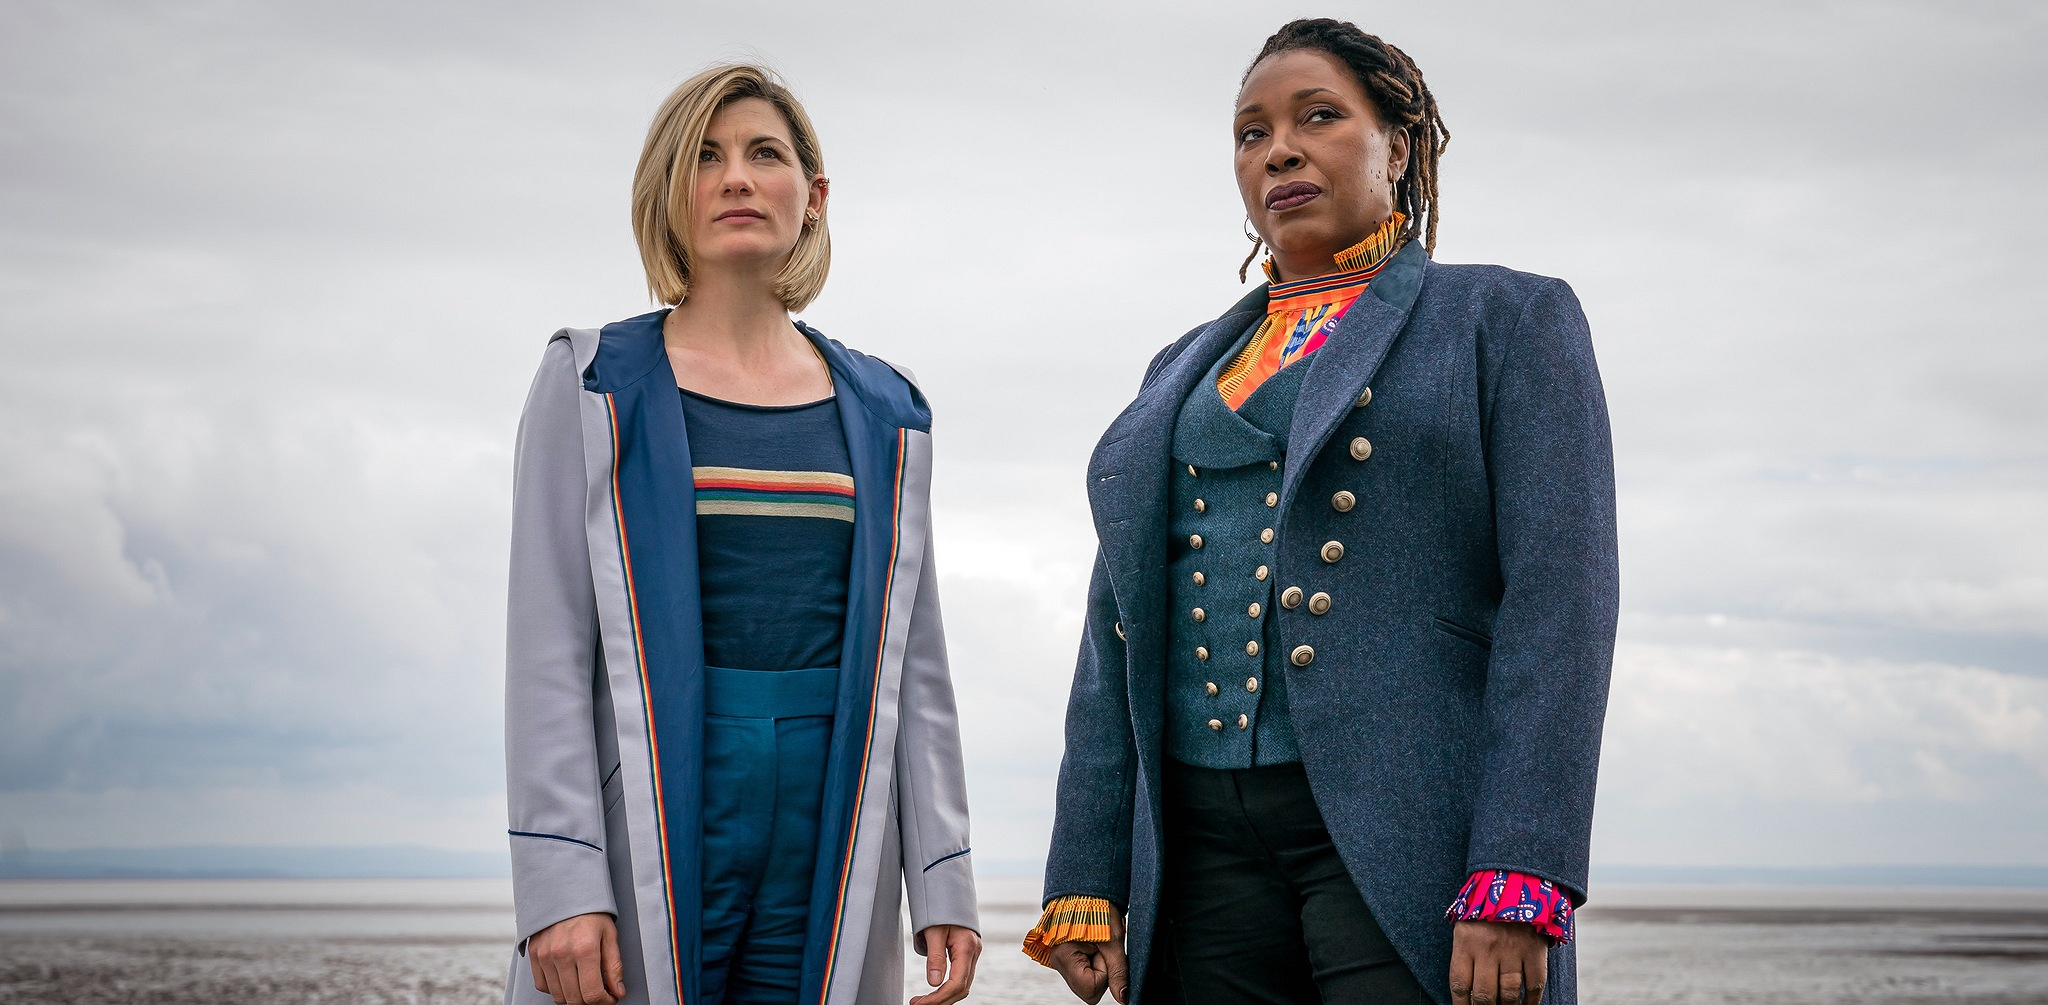 doctor who review fugitive of the judoon jo martin jodie whittaker jack harkness john barrowman vinay patel nida manzoor chris chibnall